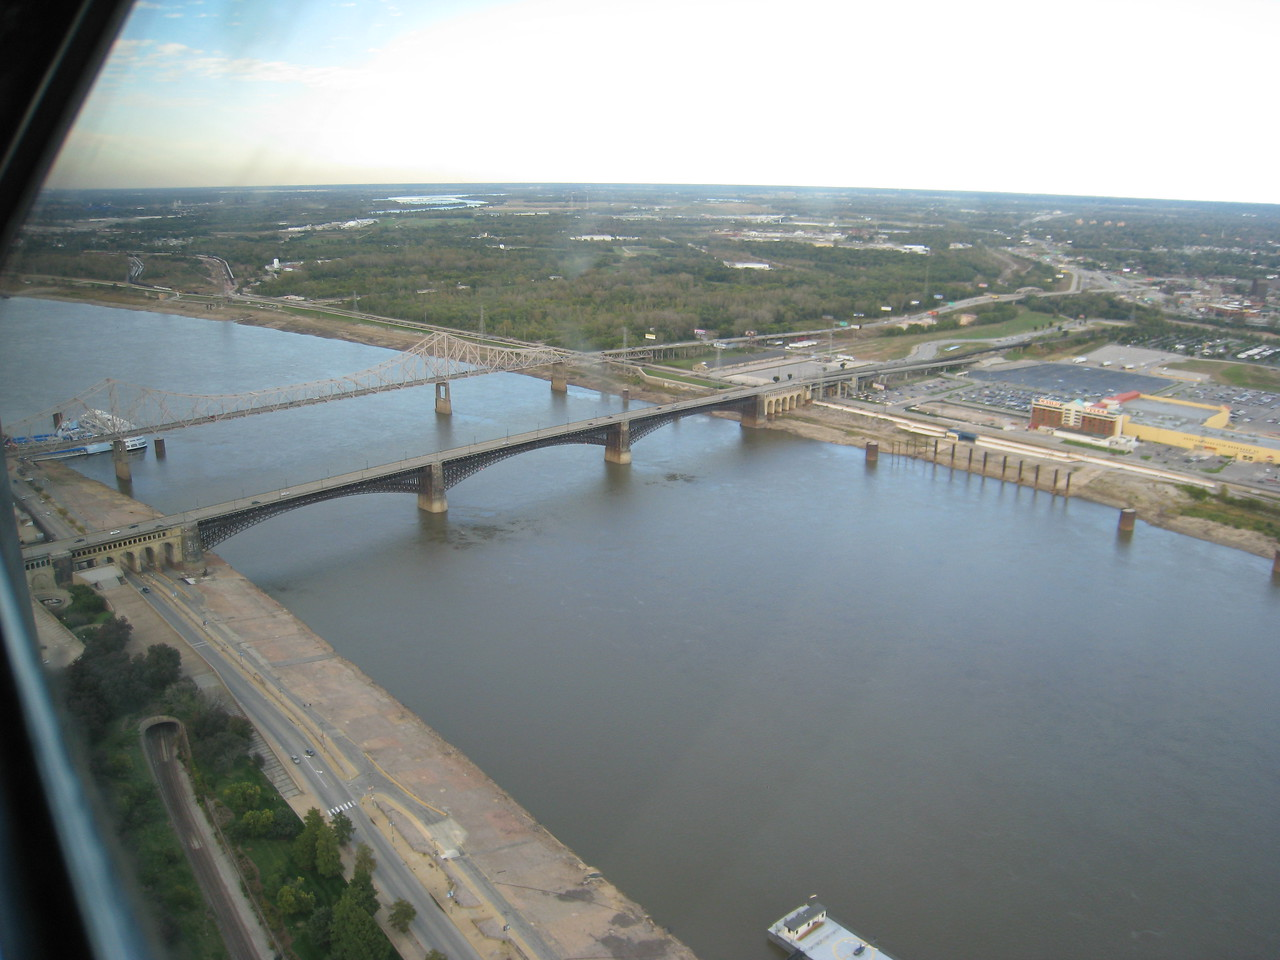 Bridges over the Mississippi river, north view